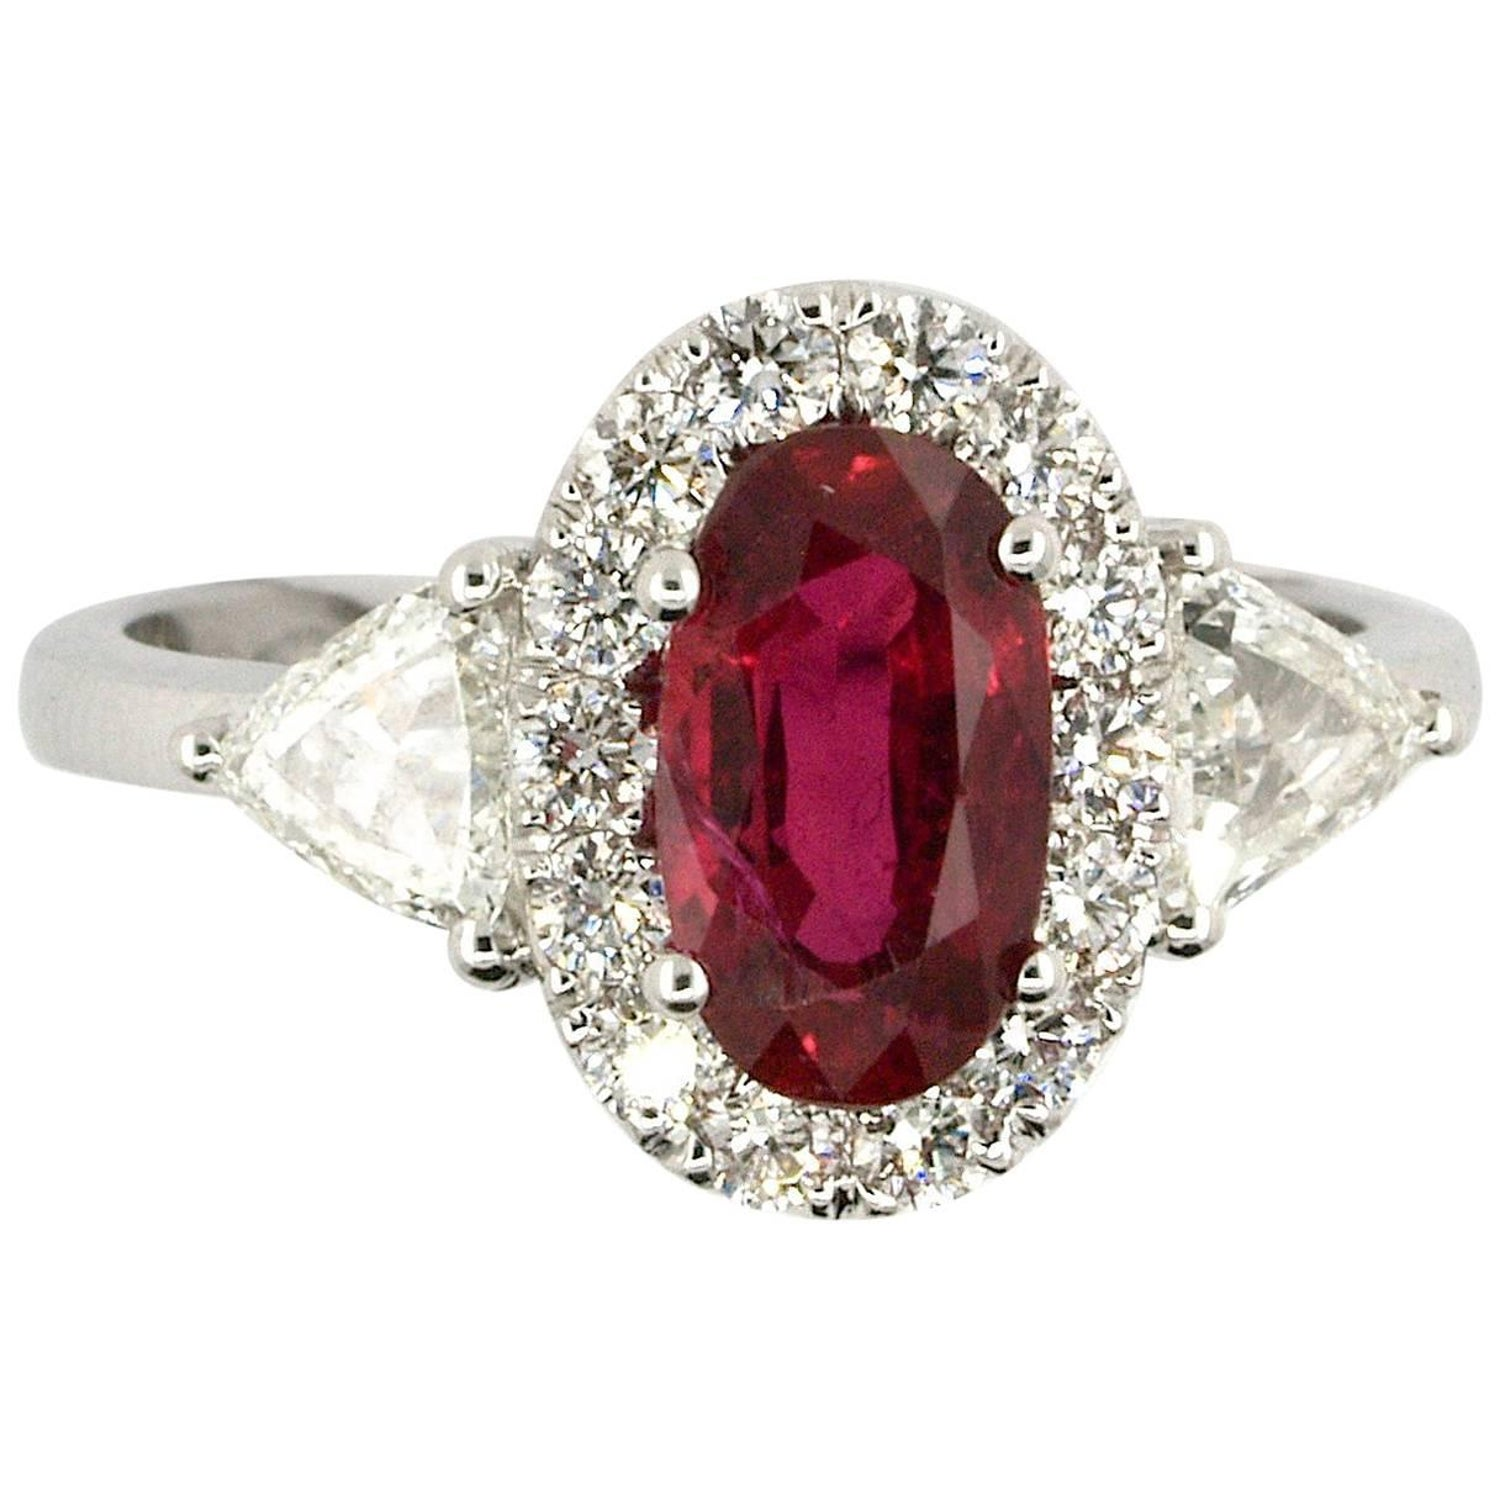 261 Carat Grs Certified Blood Red Ruby And Diamond Ring